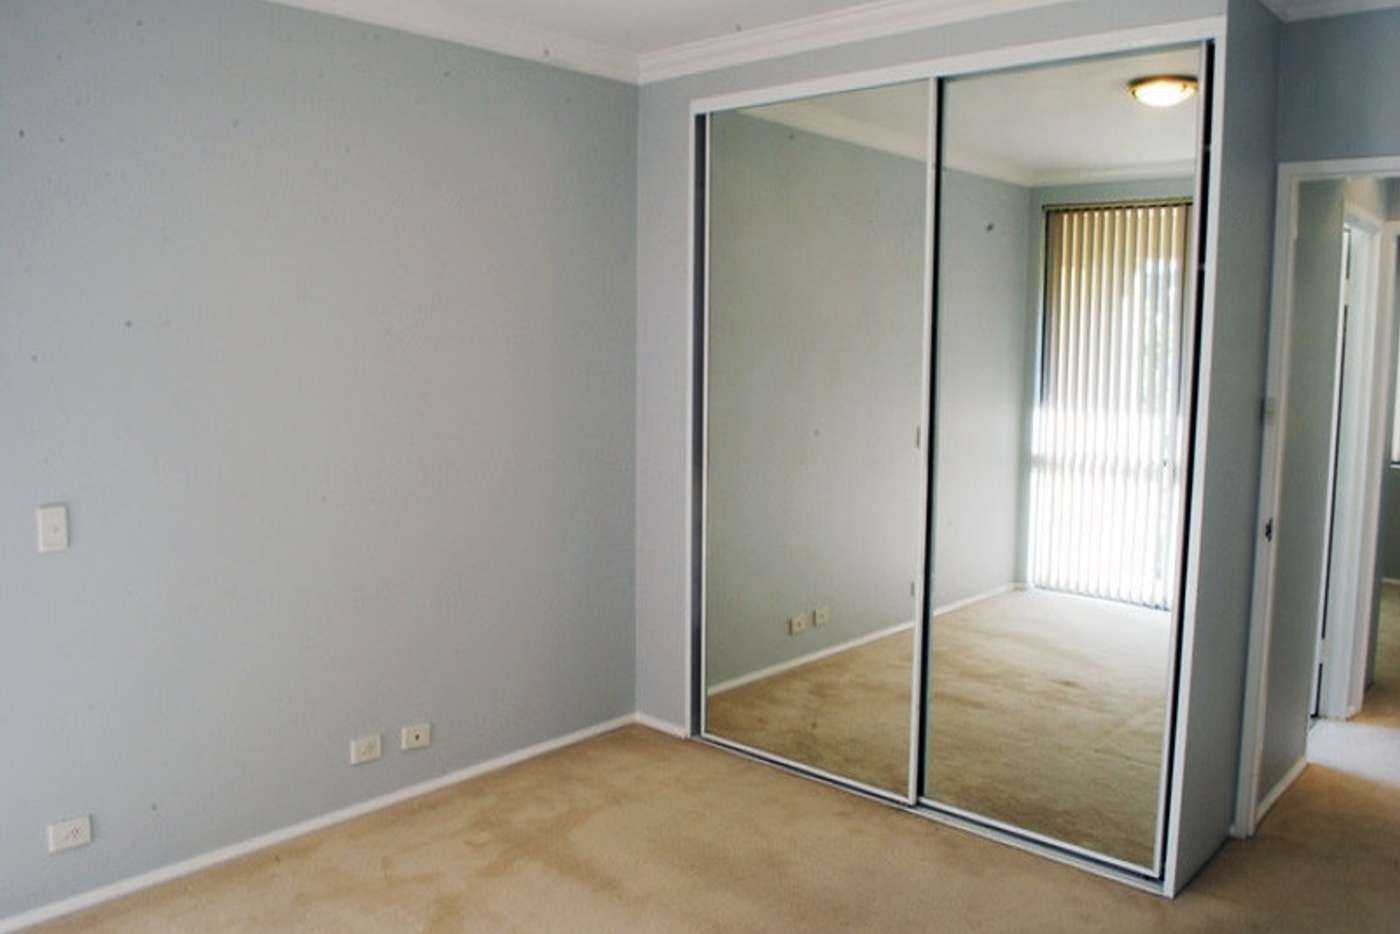 Sixth view of Homely apartment listing, 204/6 Doepel Street, North Fremantle WA 6159